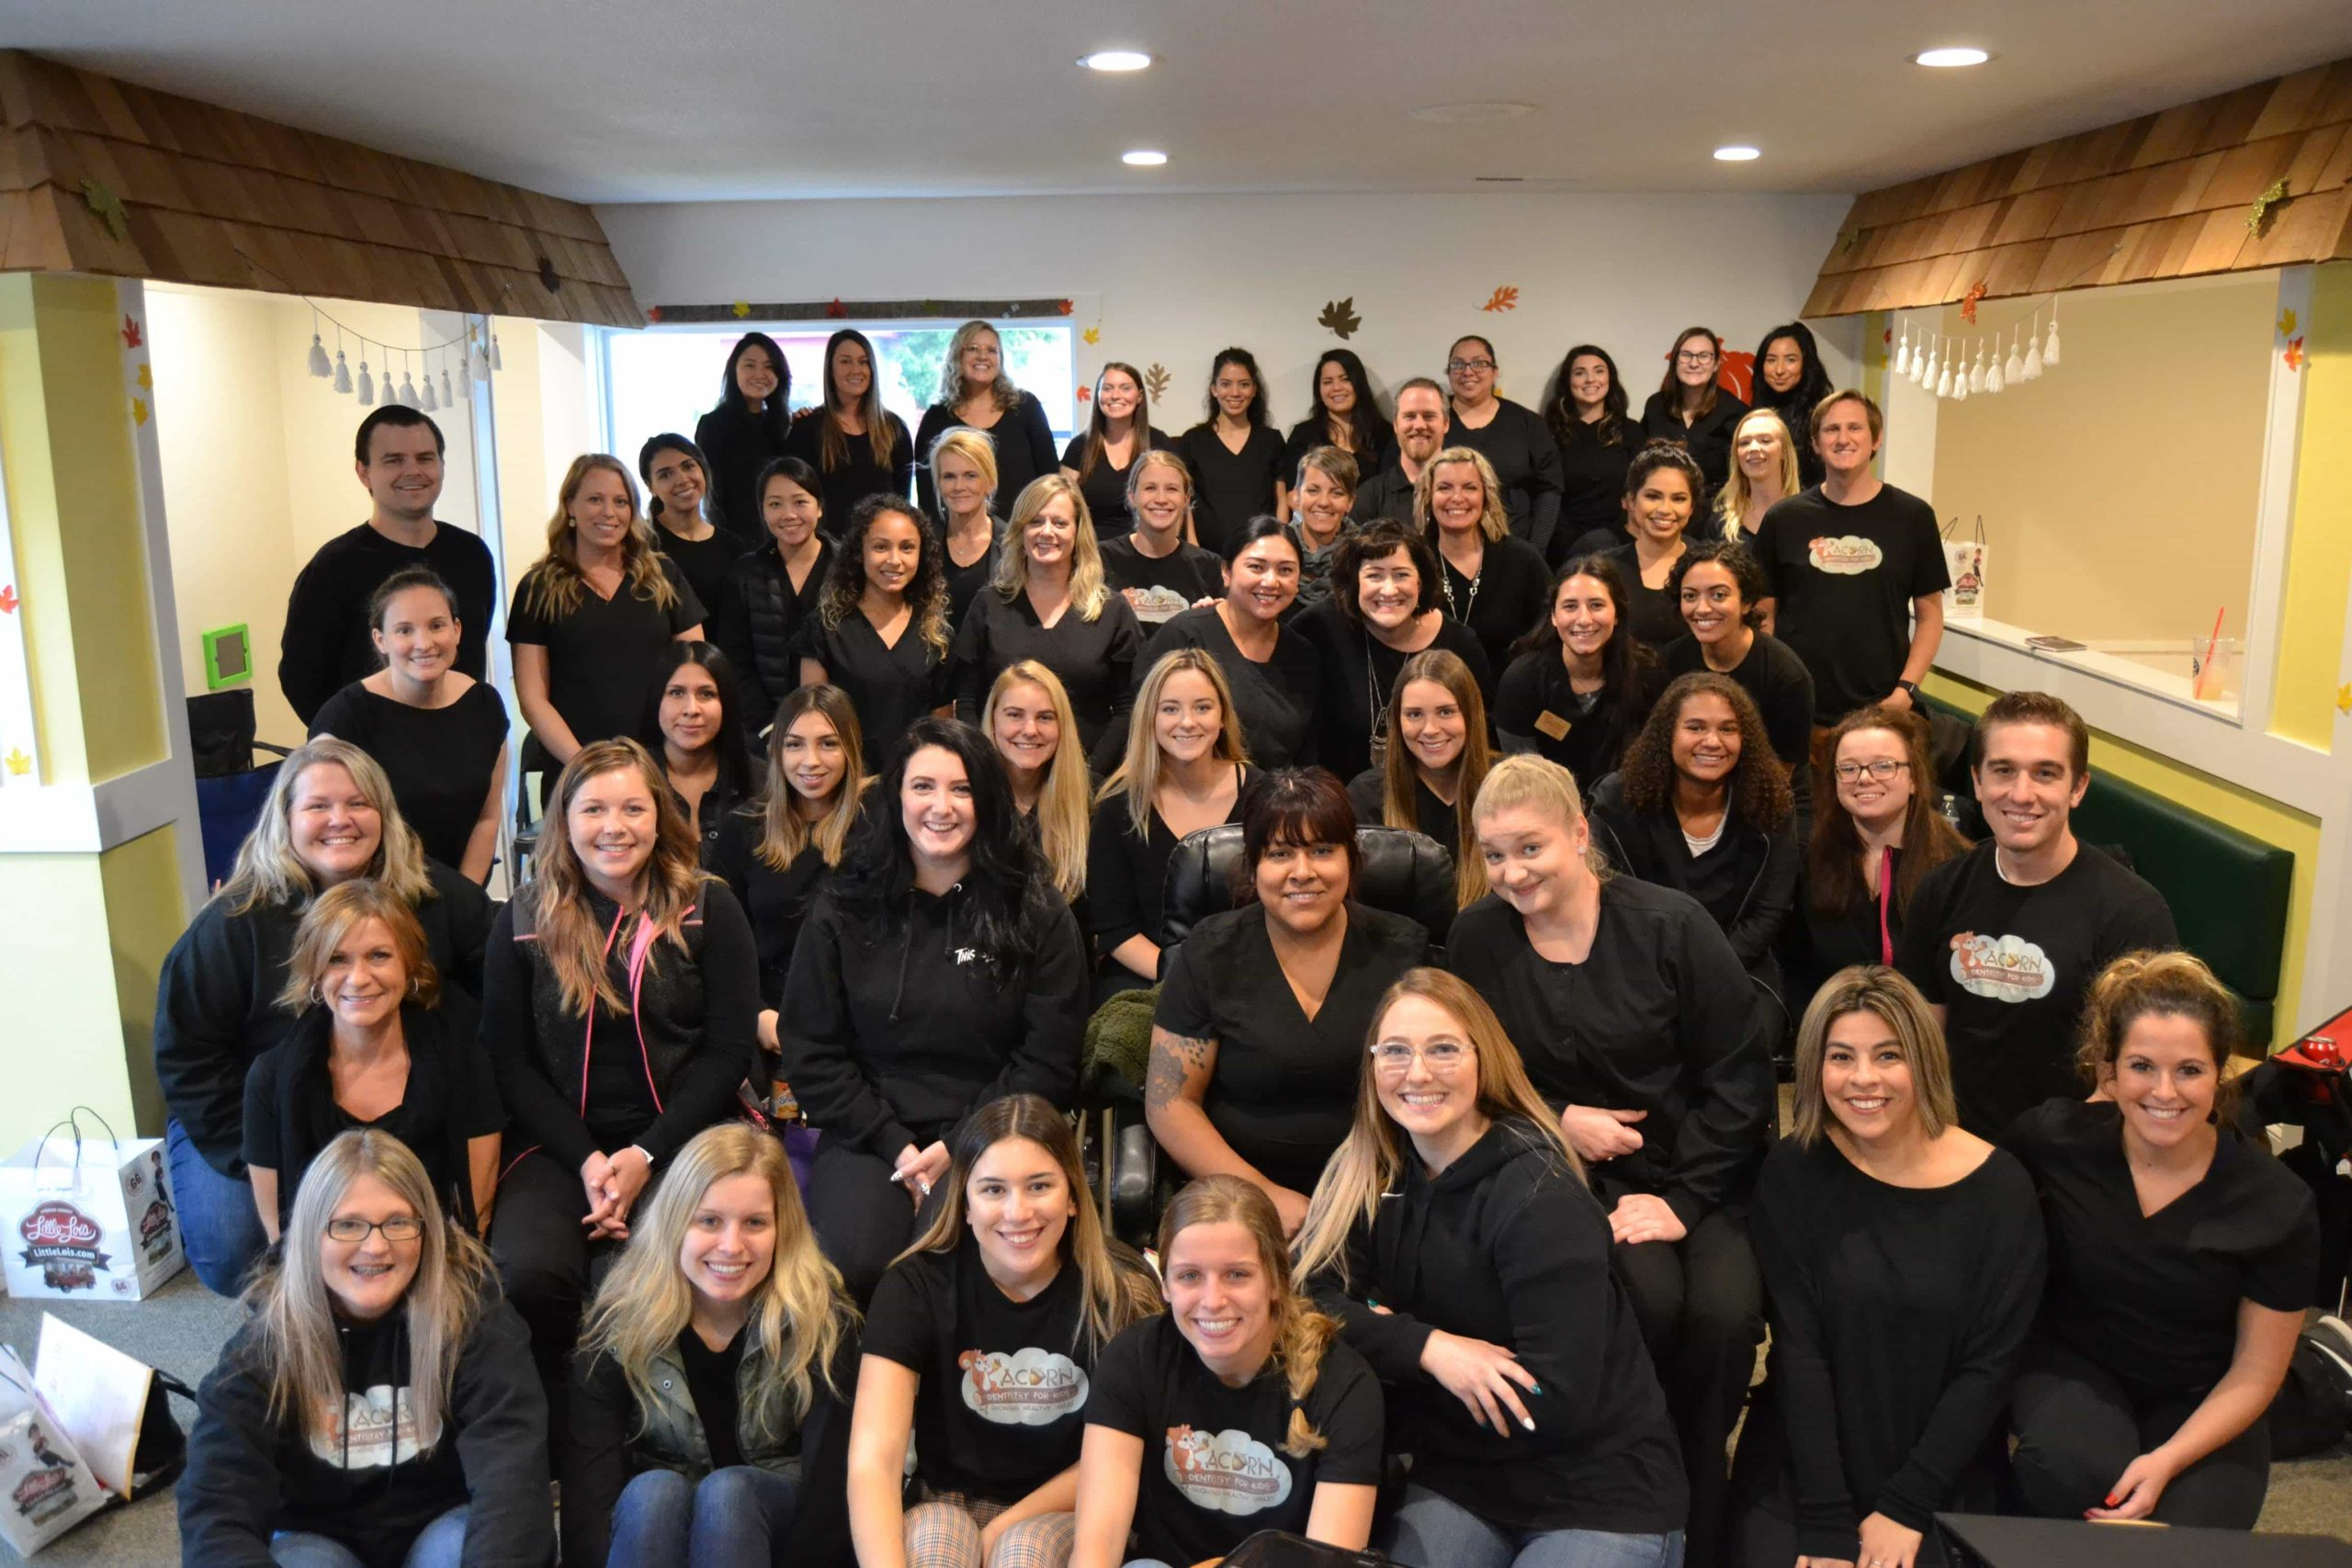 Acorn Dentistry for Kids Group Photo